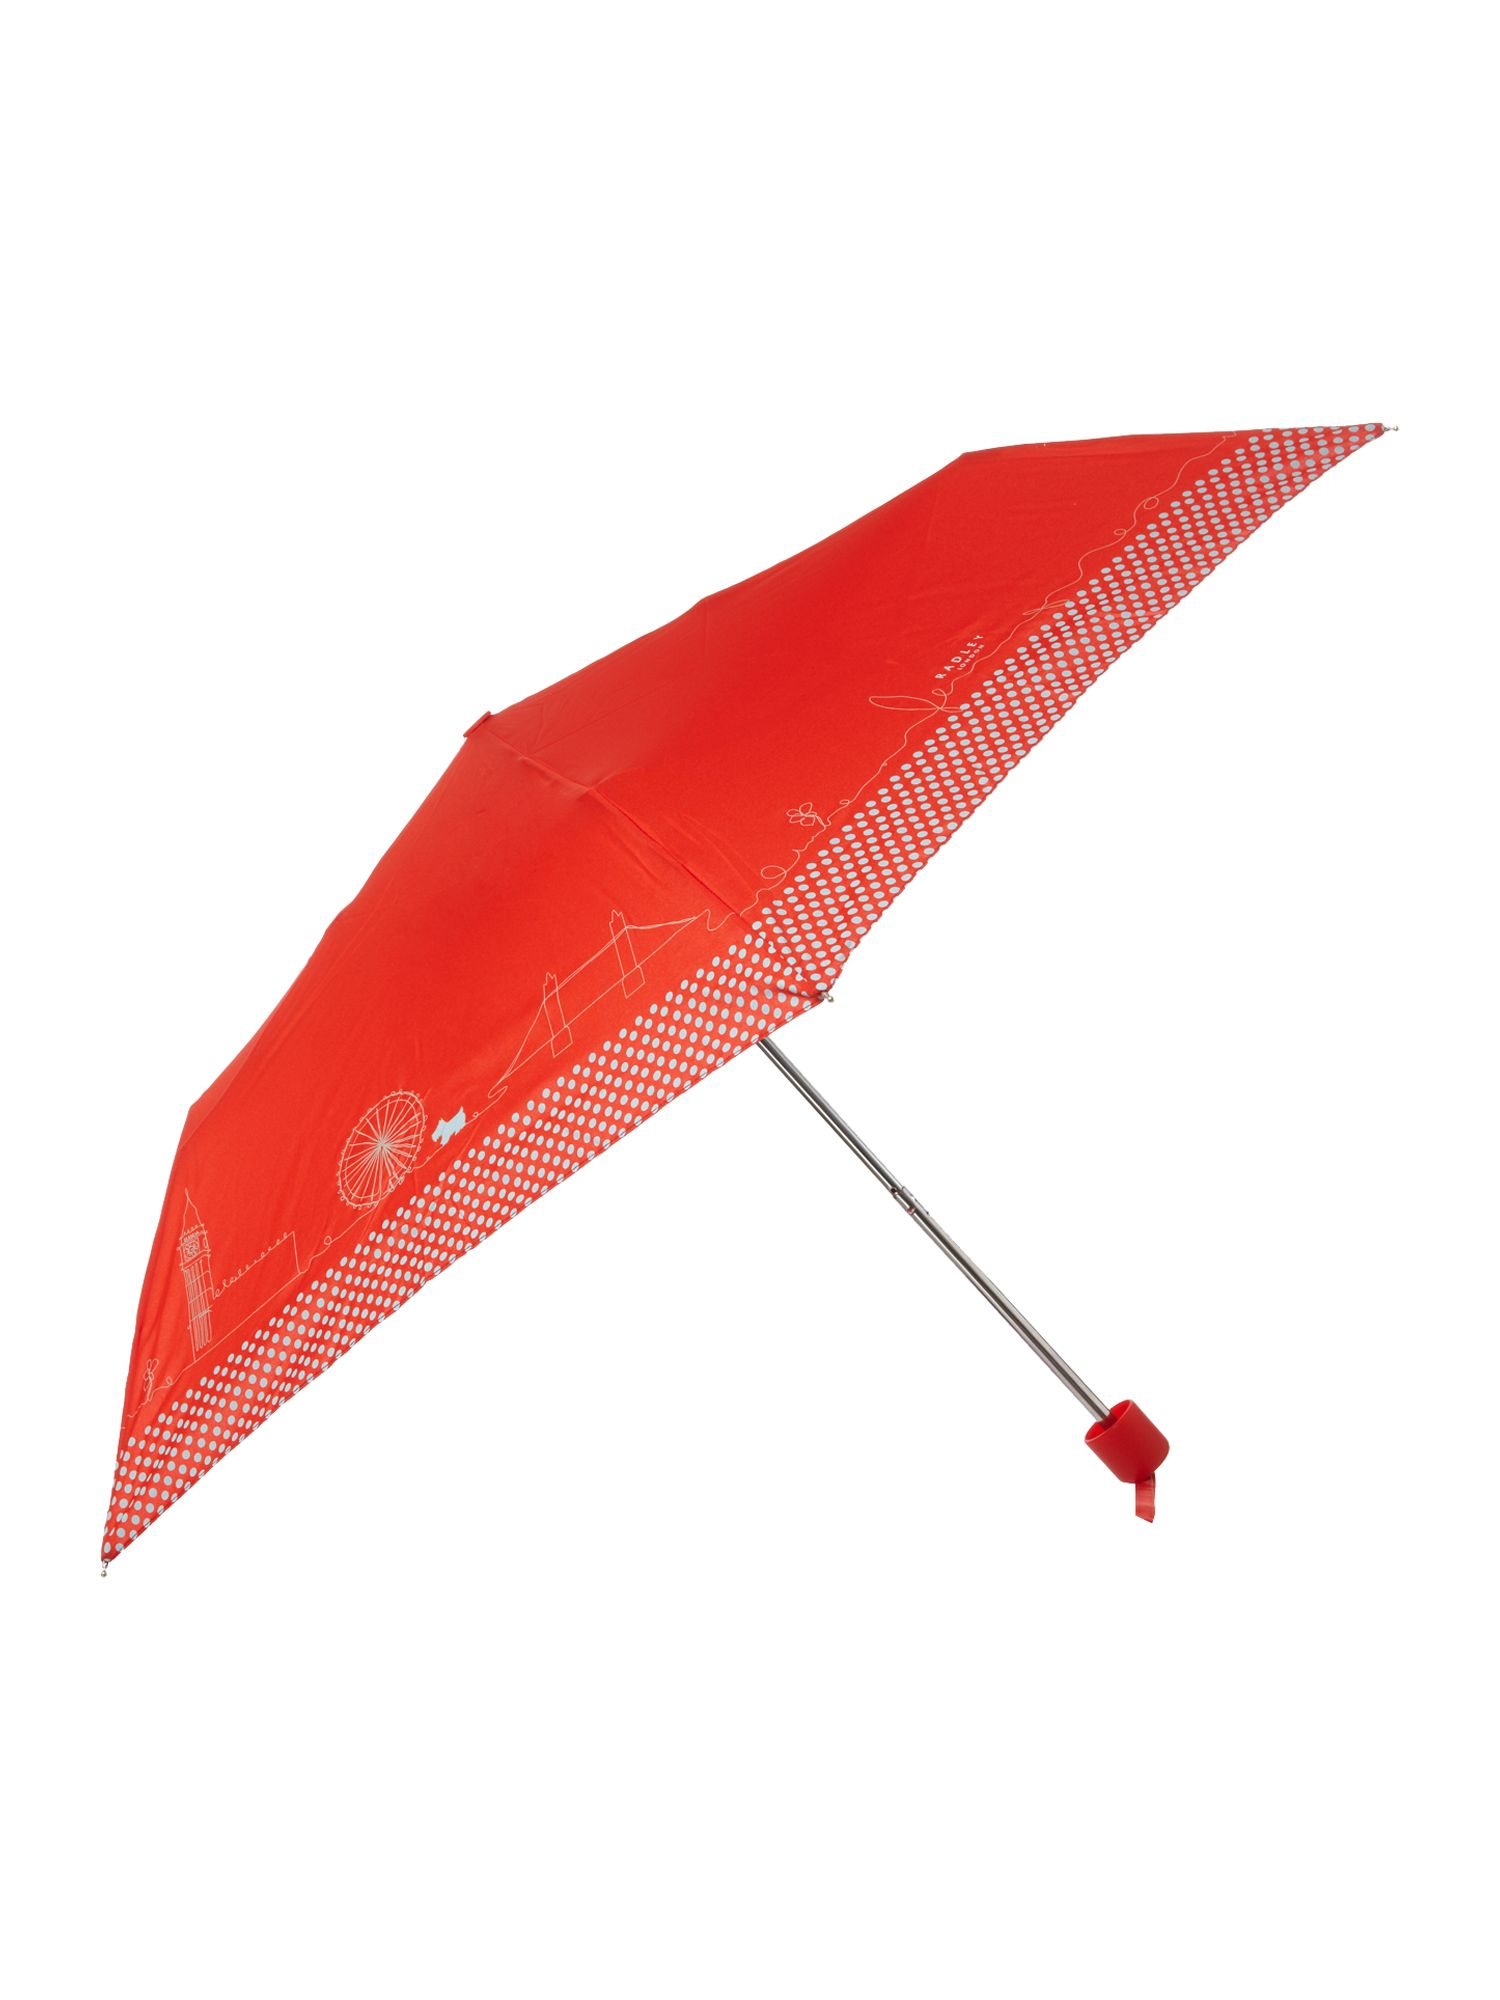 London mini telescopic umbrella